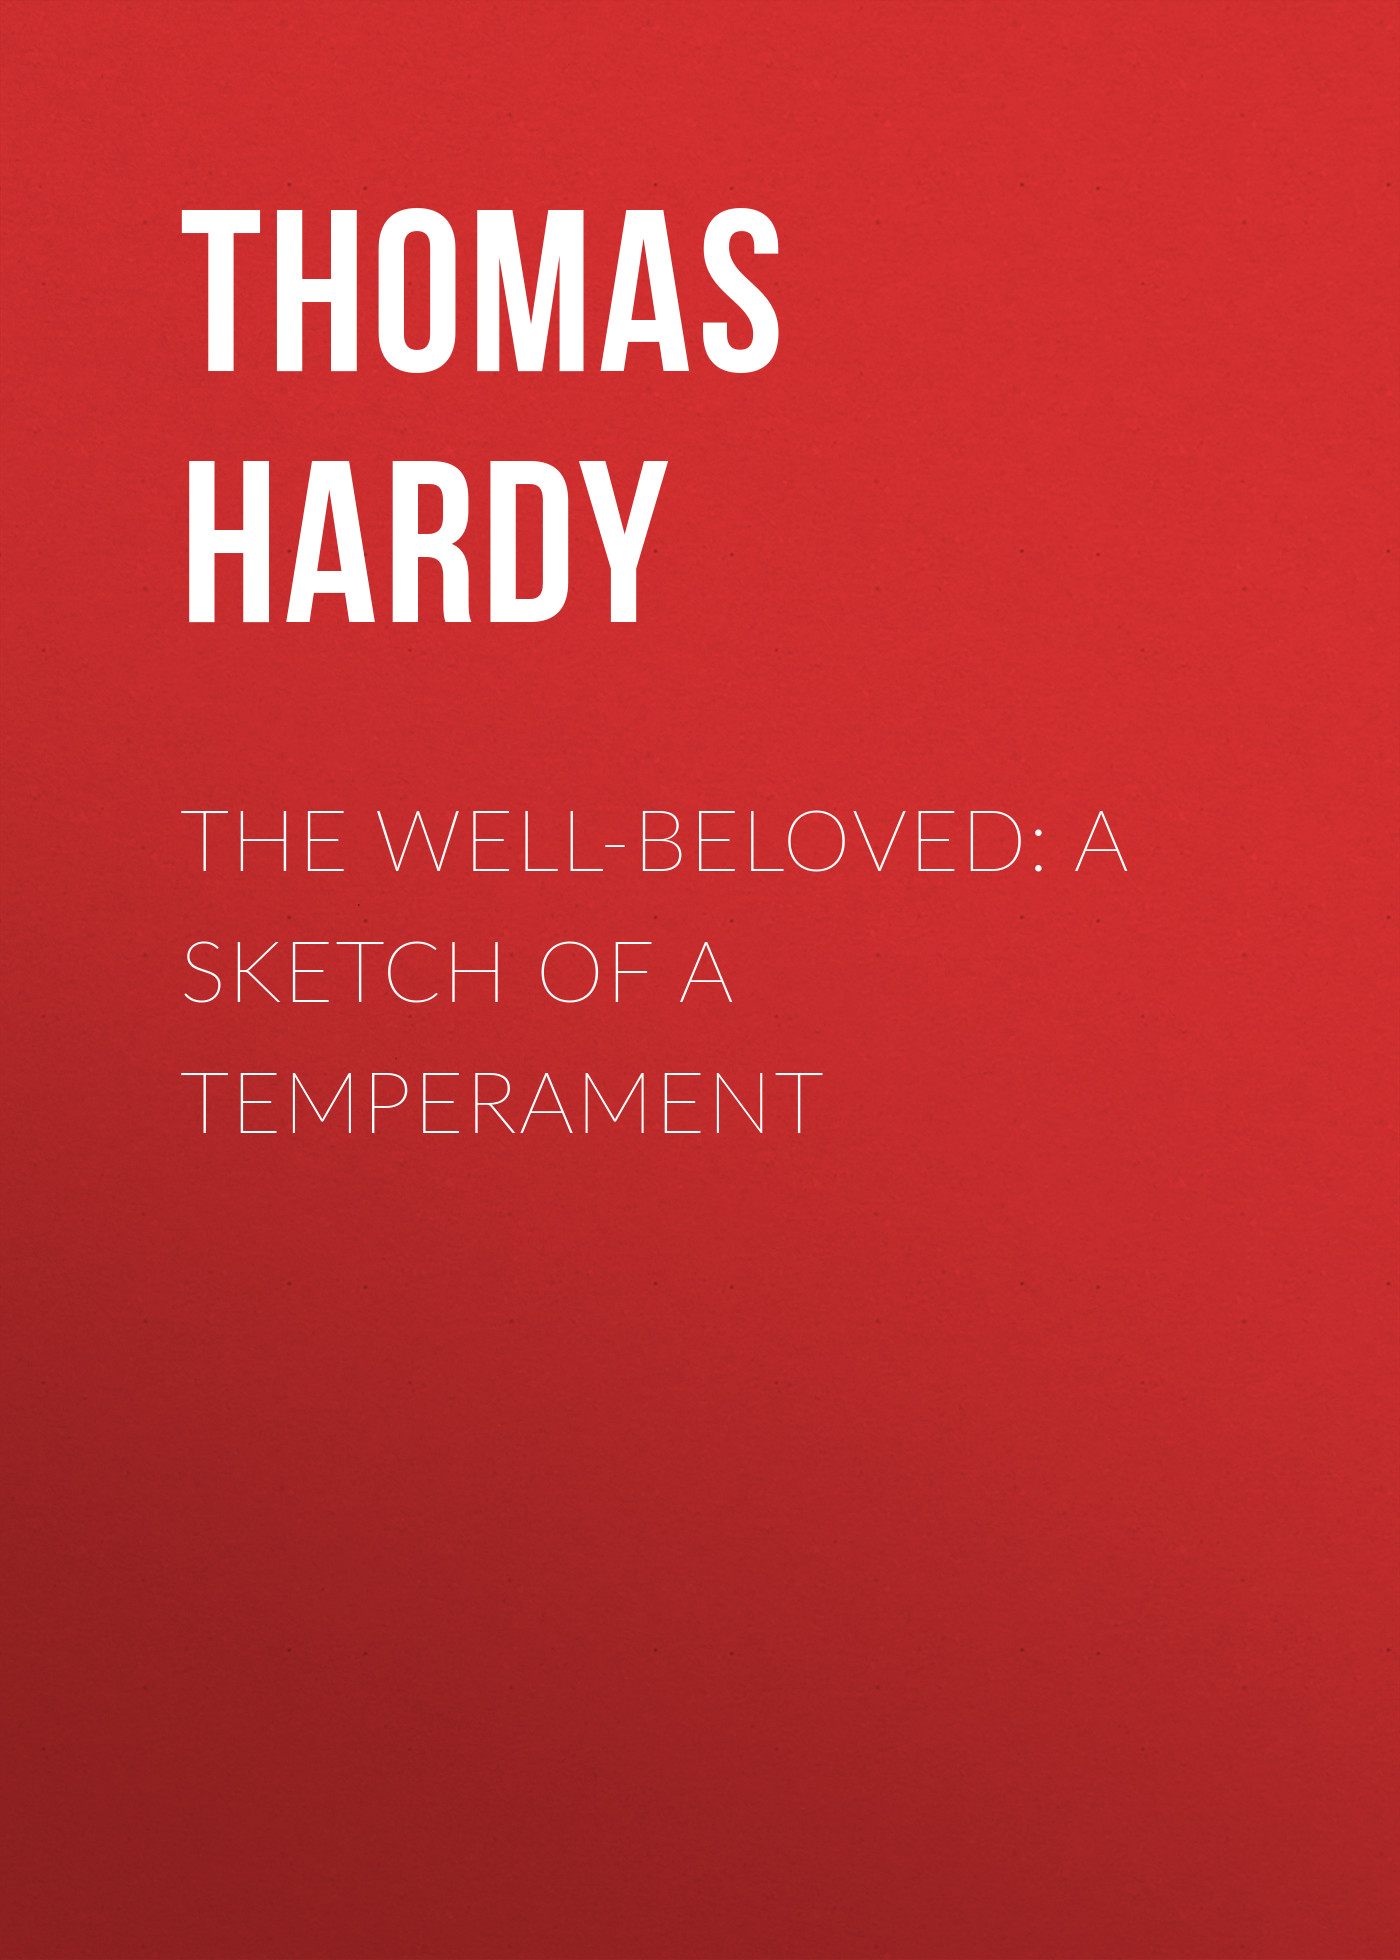 Thomas Hardy The Well-Beloved: A Sketch of a Temperament thomas hardy a pair of blue eyes